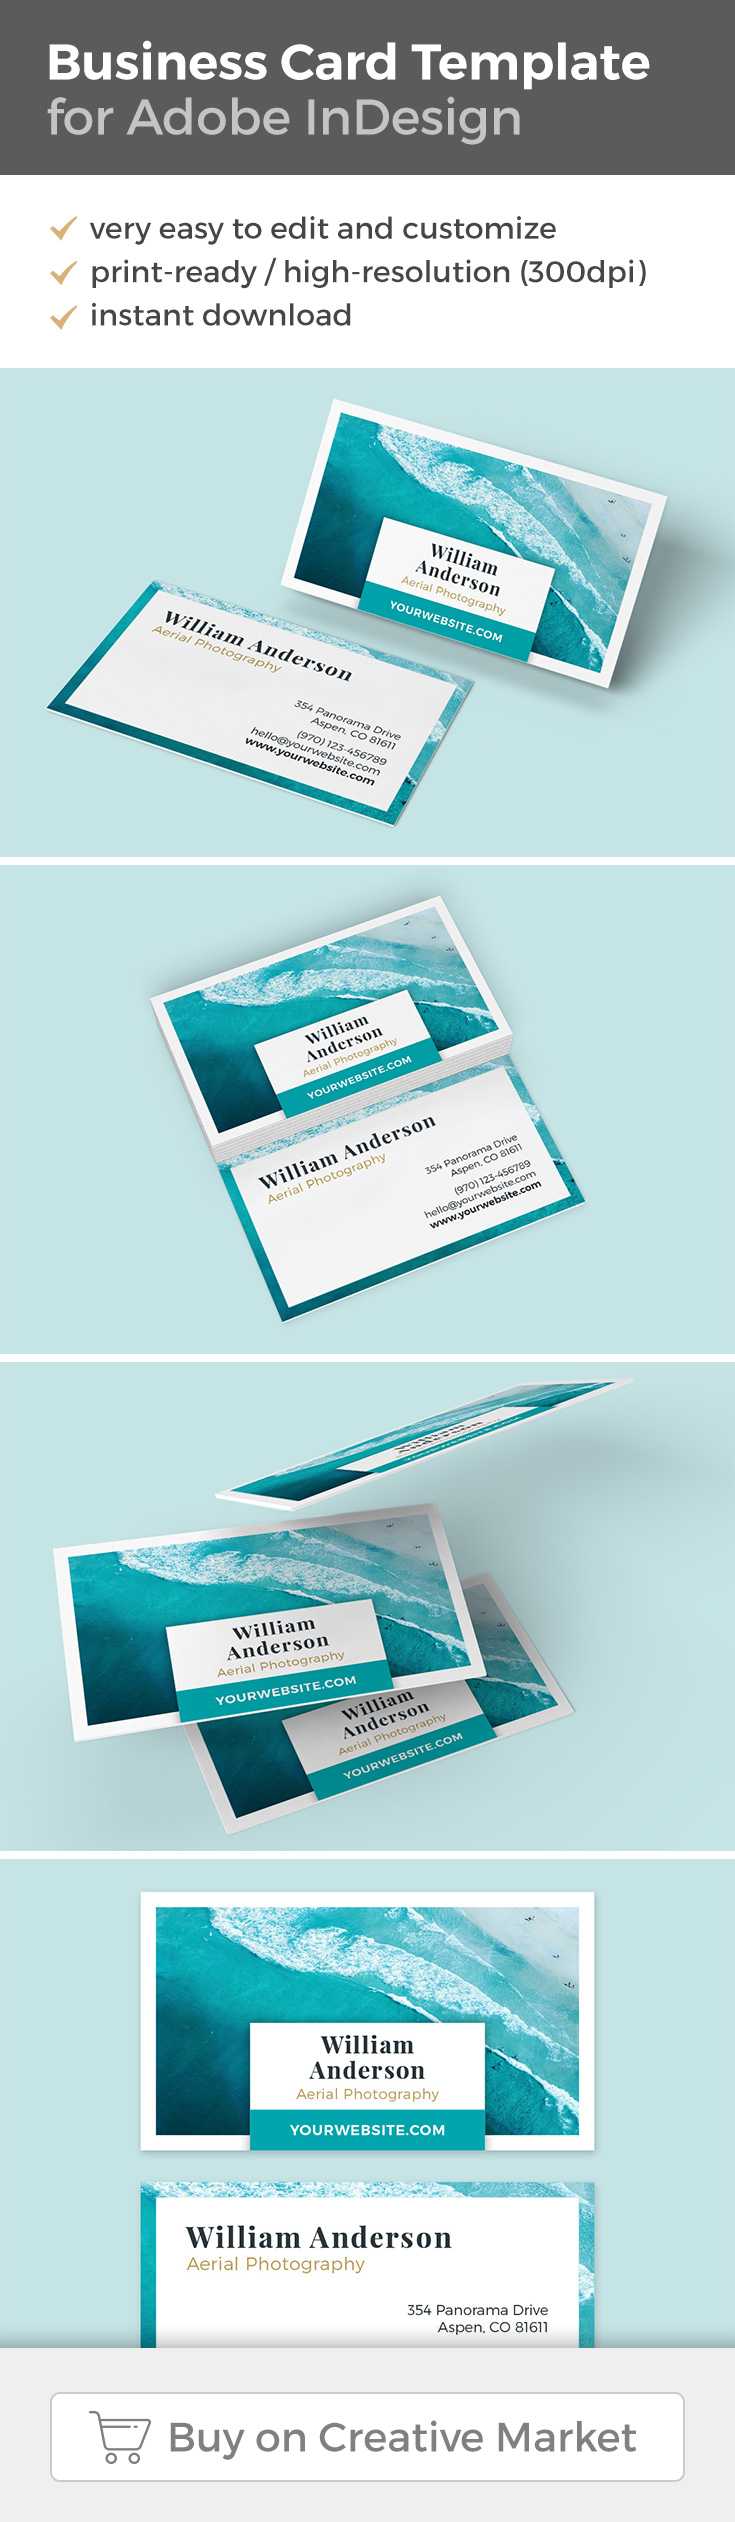 Beautiful business card template for adobe indesign with an ocean beautiful business card template for adobe indesign with an ocean theme friedricerecipe Gallery